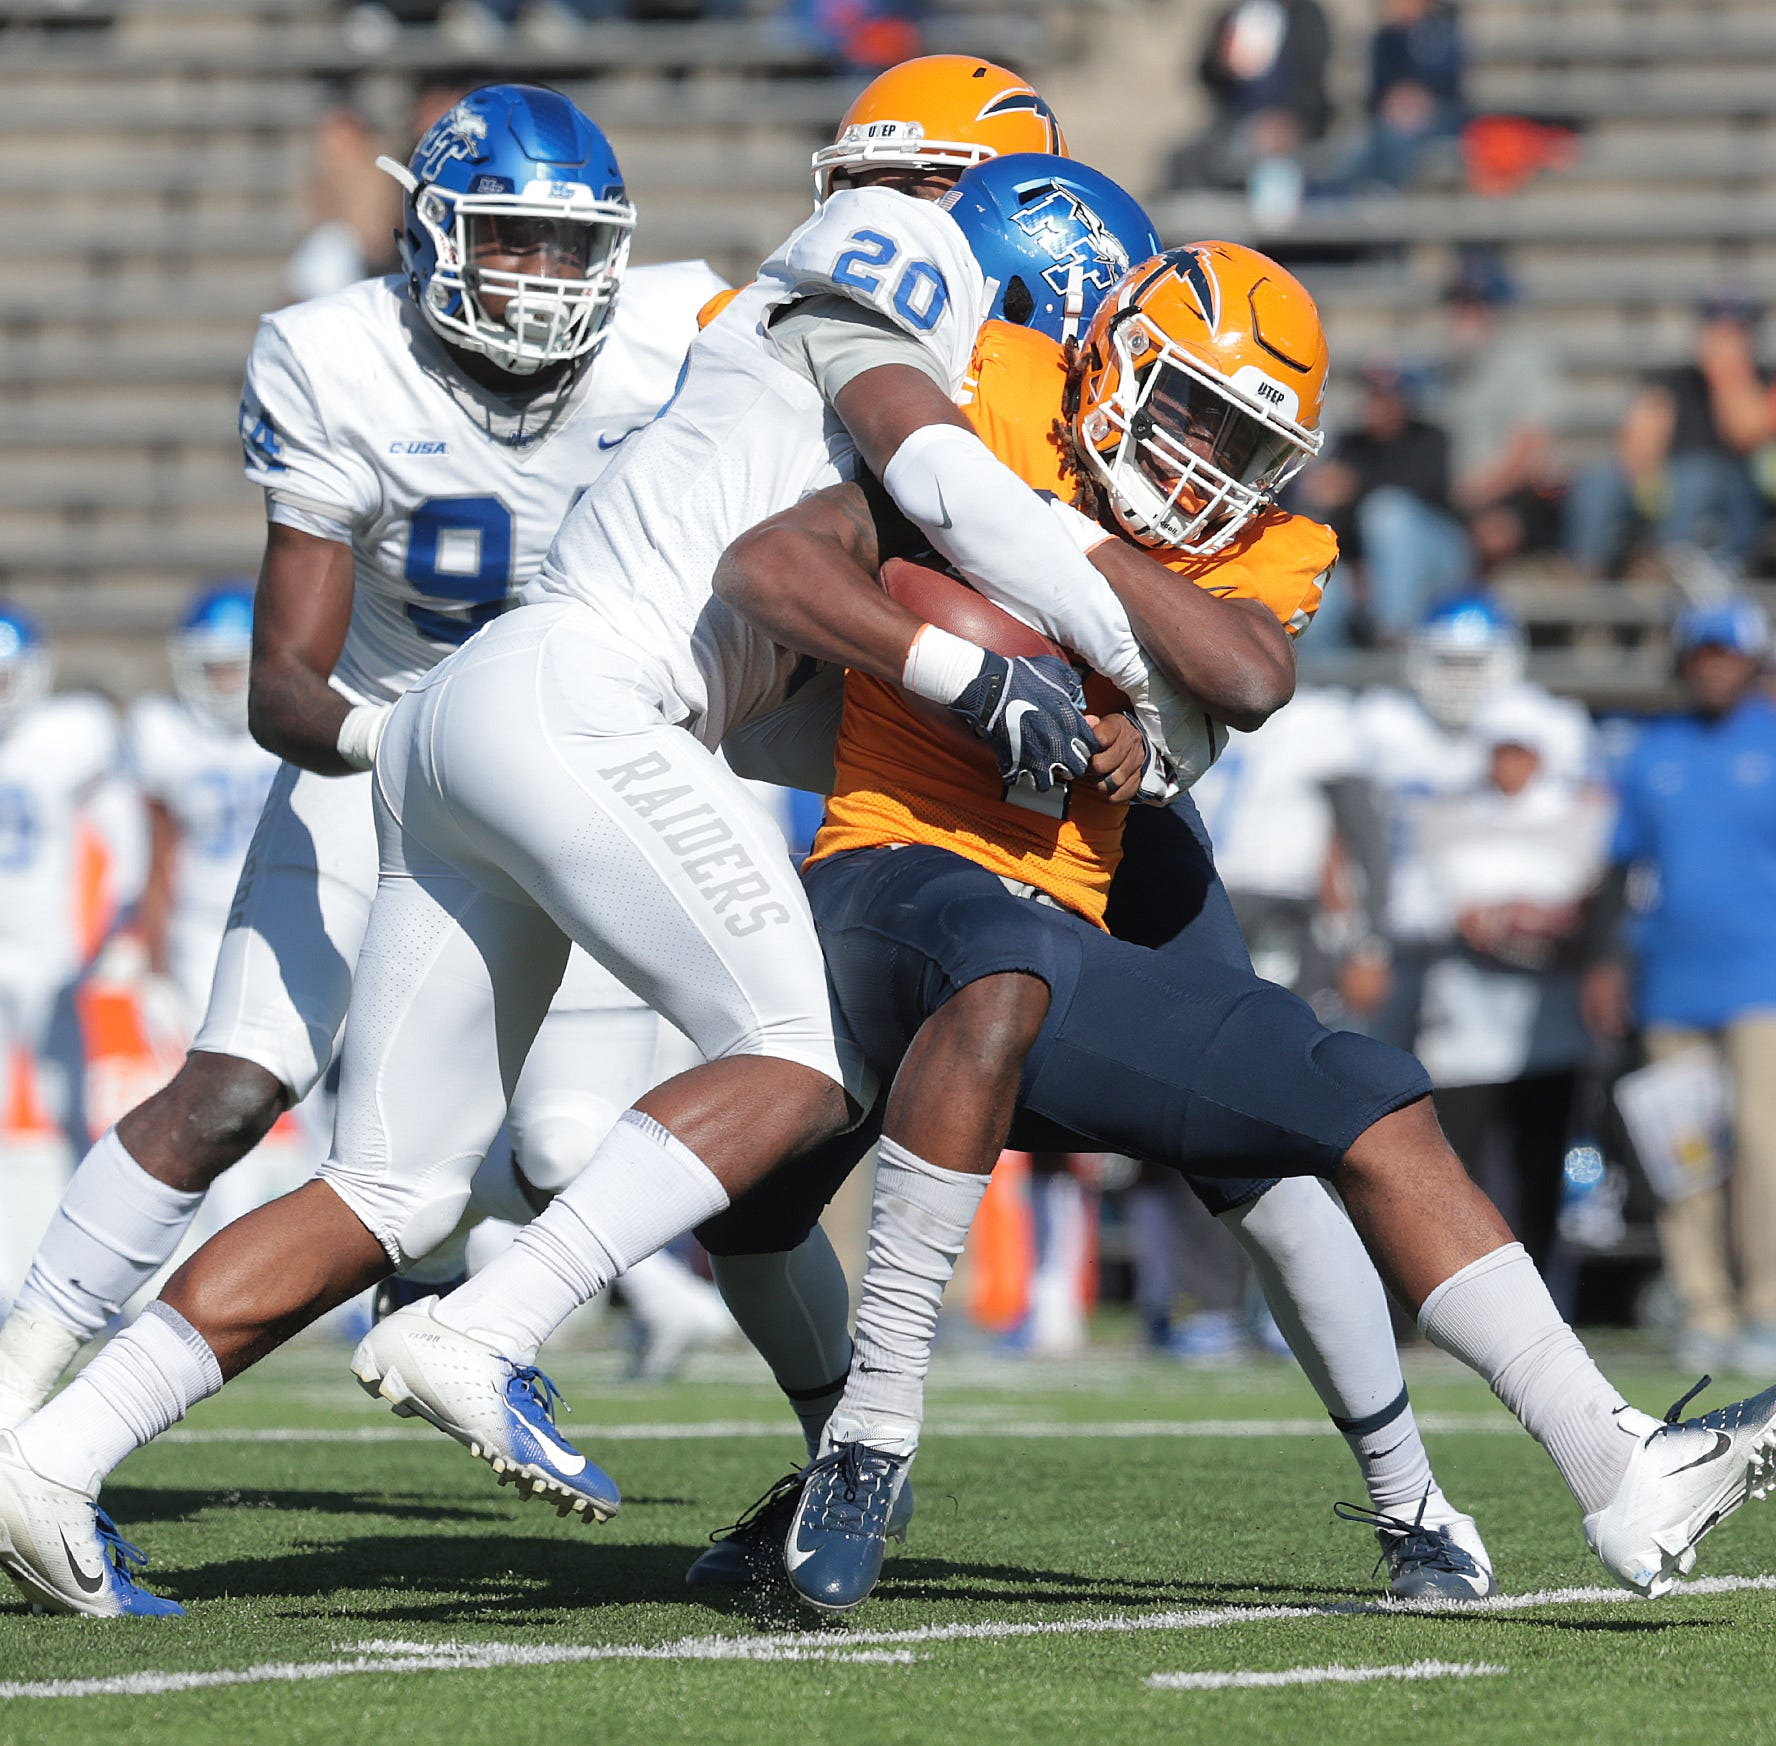 MTSU defense credits playing SEC football teams for C-USA success